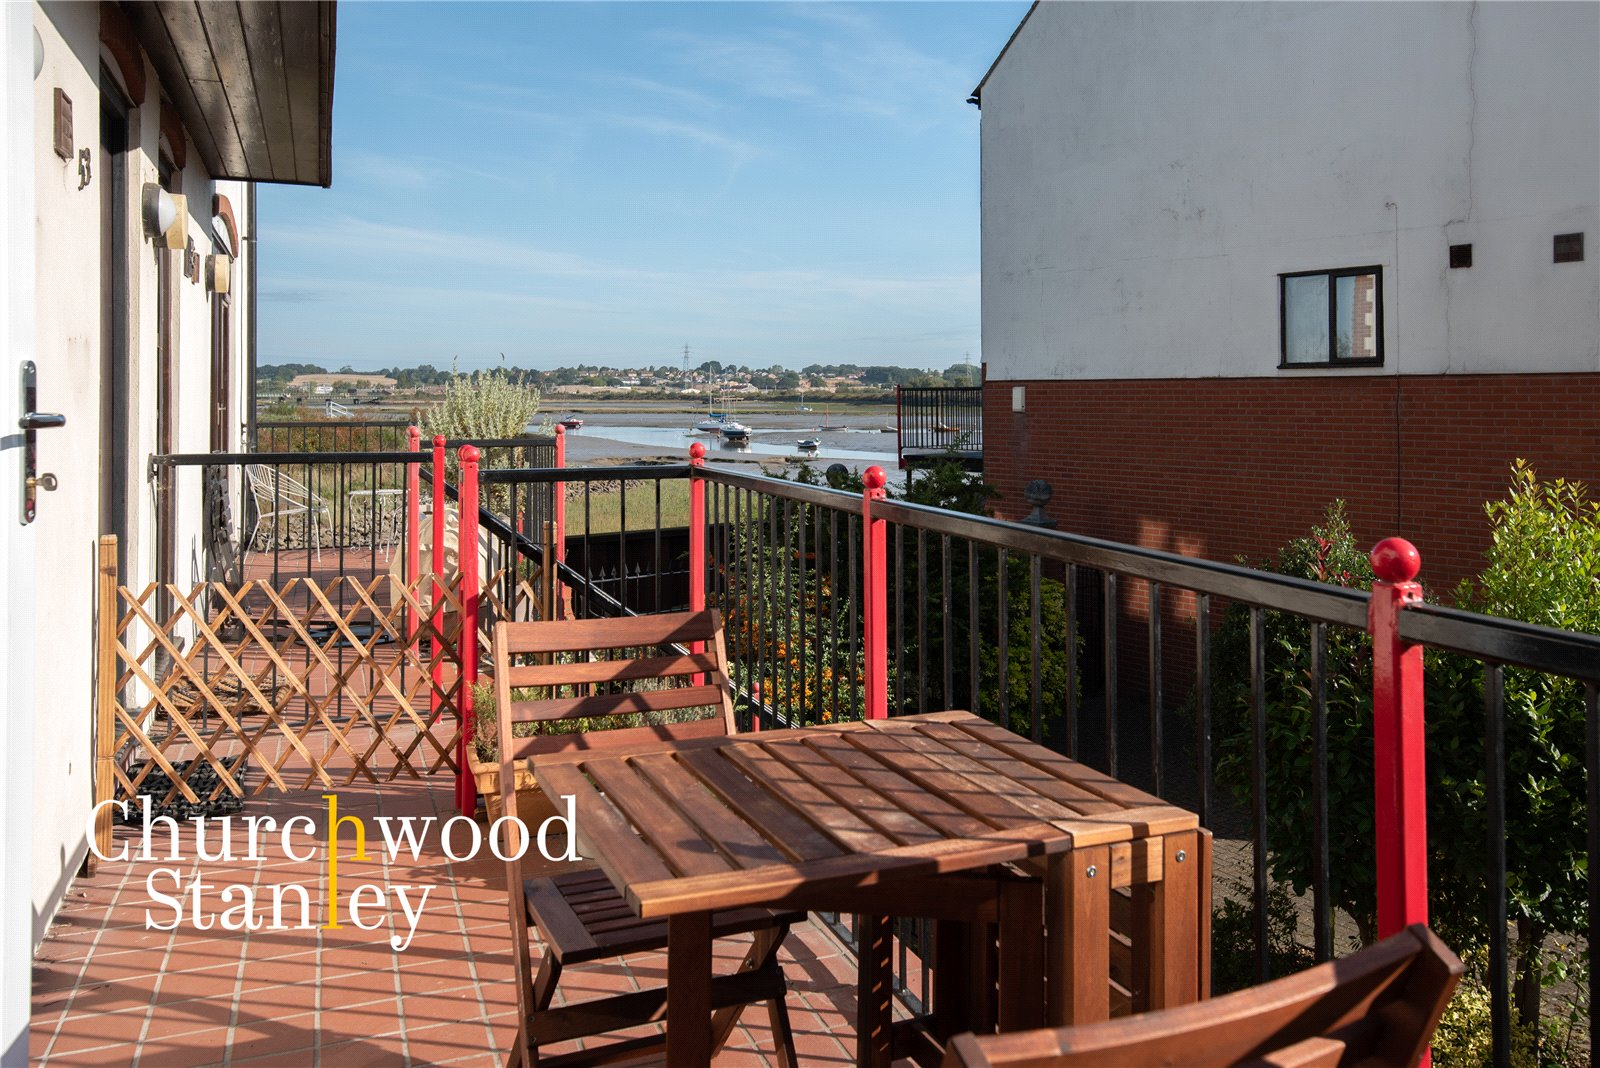 3 bed terraced-house for sale in Maltings Wharf, Manningtree, Essex, CO11